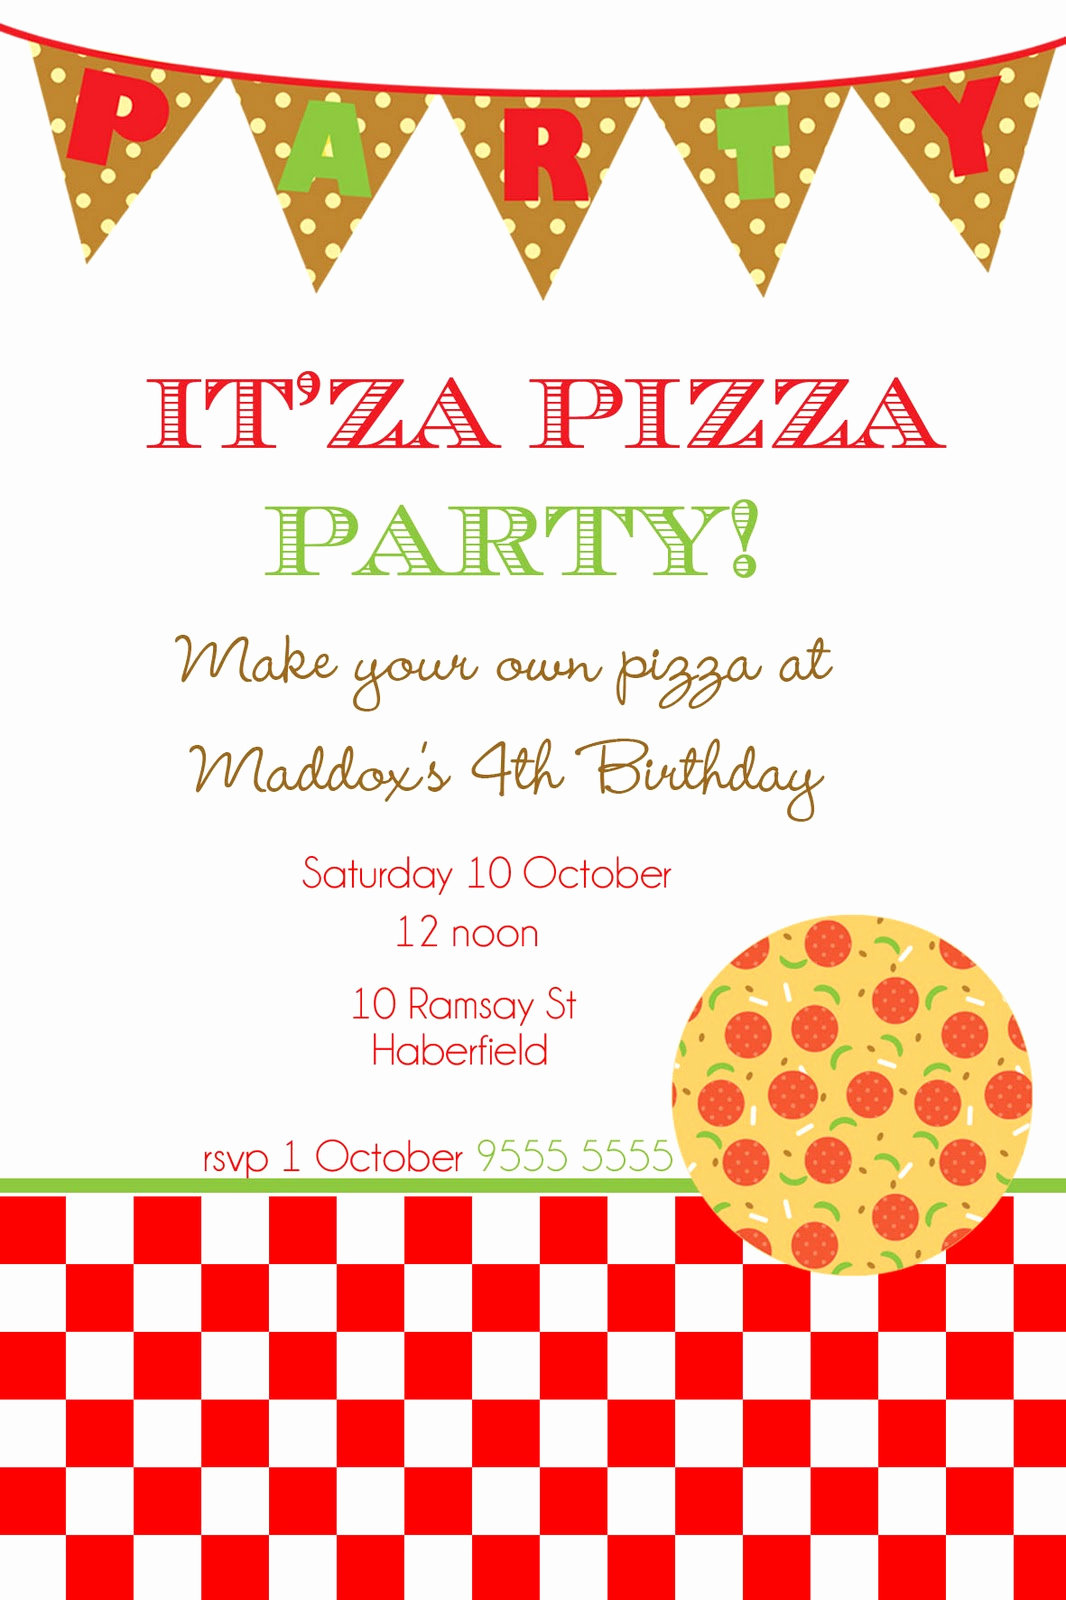 Pizza Party Invitation Templates Luxury Mon Tresor March 2011